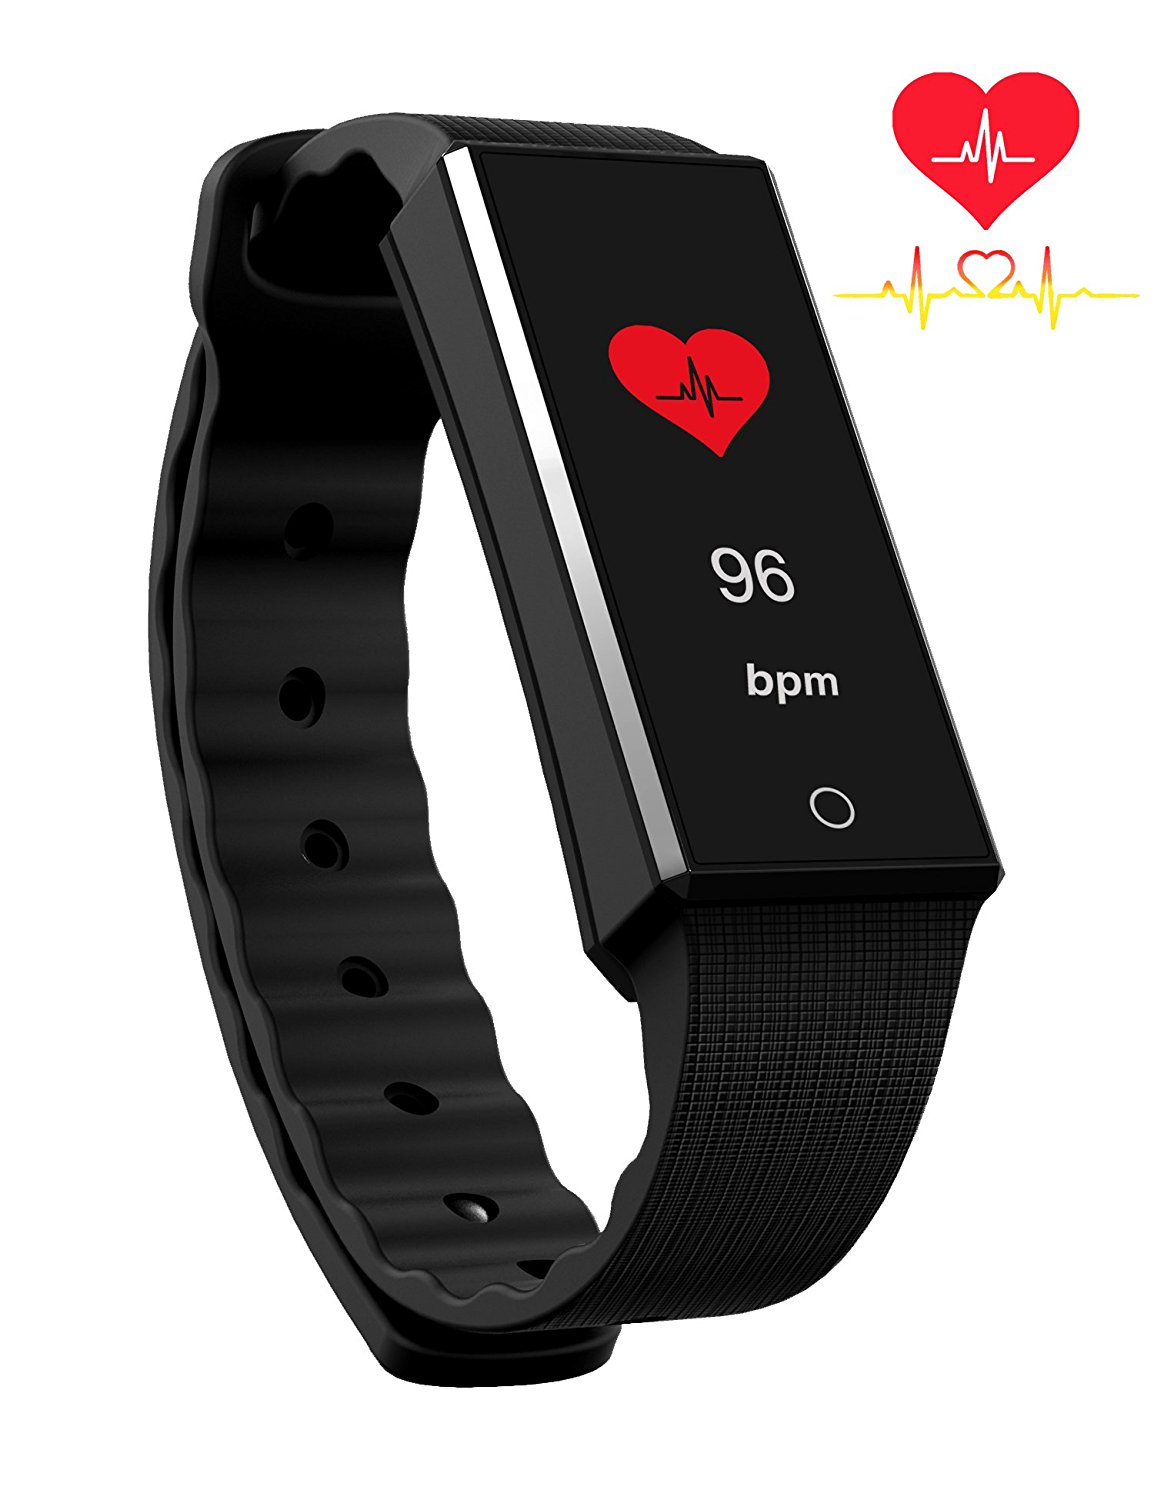 BitHealth Z4 Smart Bracelet With Heart Rate Monitor, Activity Tracker, Smart Wristband. Color Display. Activity/Workout/Heart Rate/Sleep Smartband. Continuous Heart Rate Monitor. Notification receive.